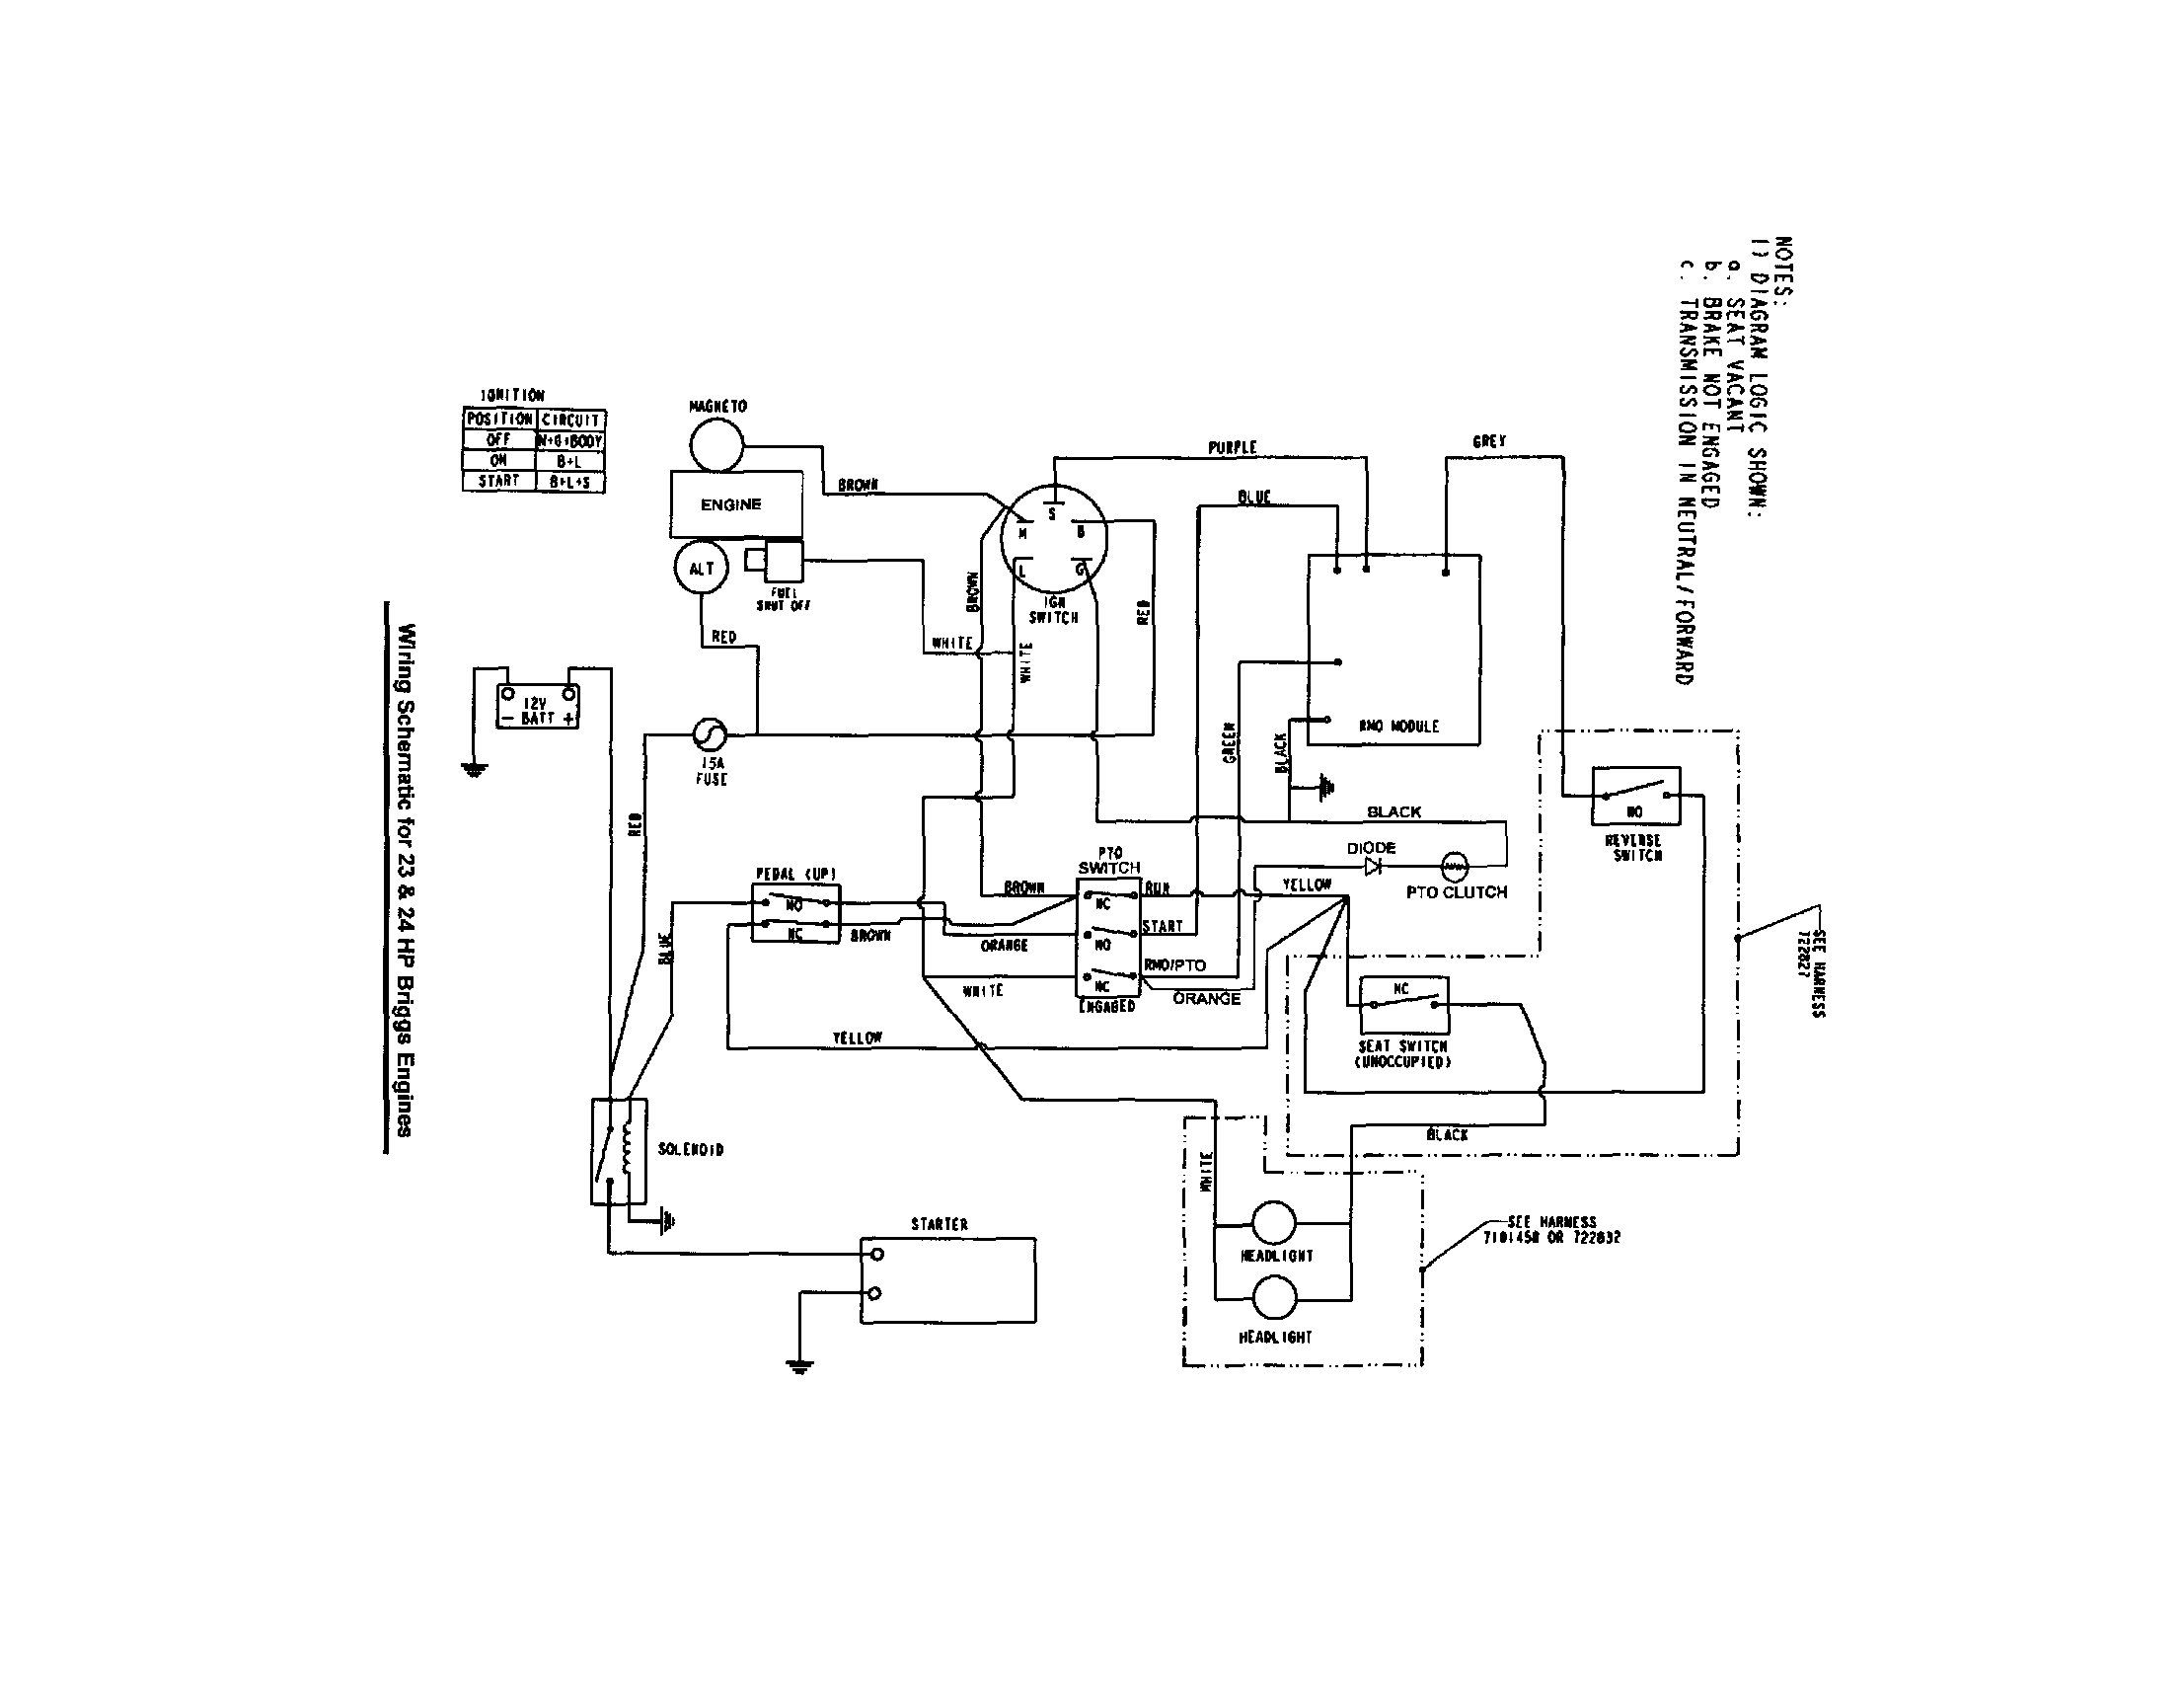 hight resolution of snapper wiring harness wiring diagram img 15488 snapper wiring harness